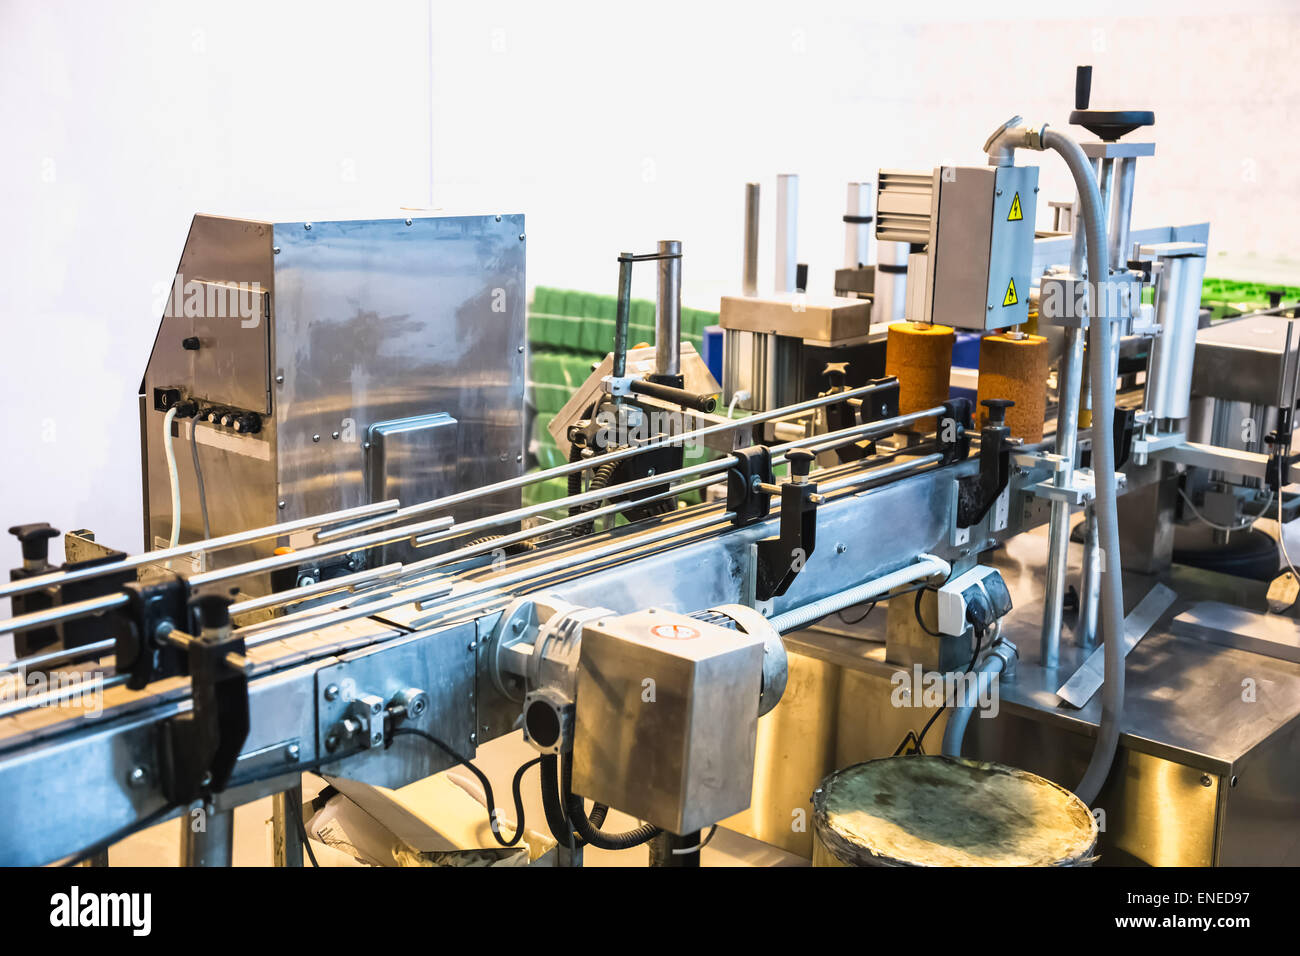 Automatic packing line of conveyor. Pharmaceutical and chemical industry. Manufacture on factory - Stock Image